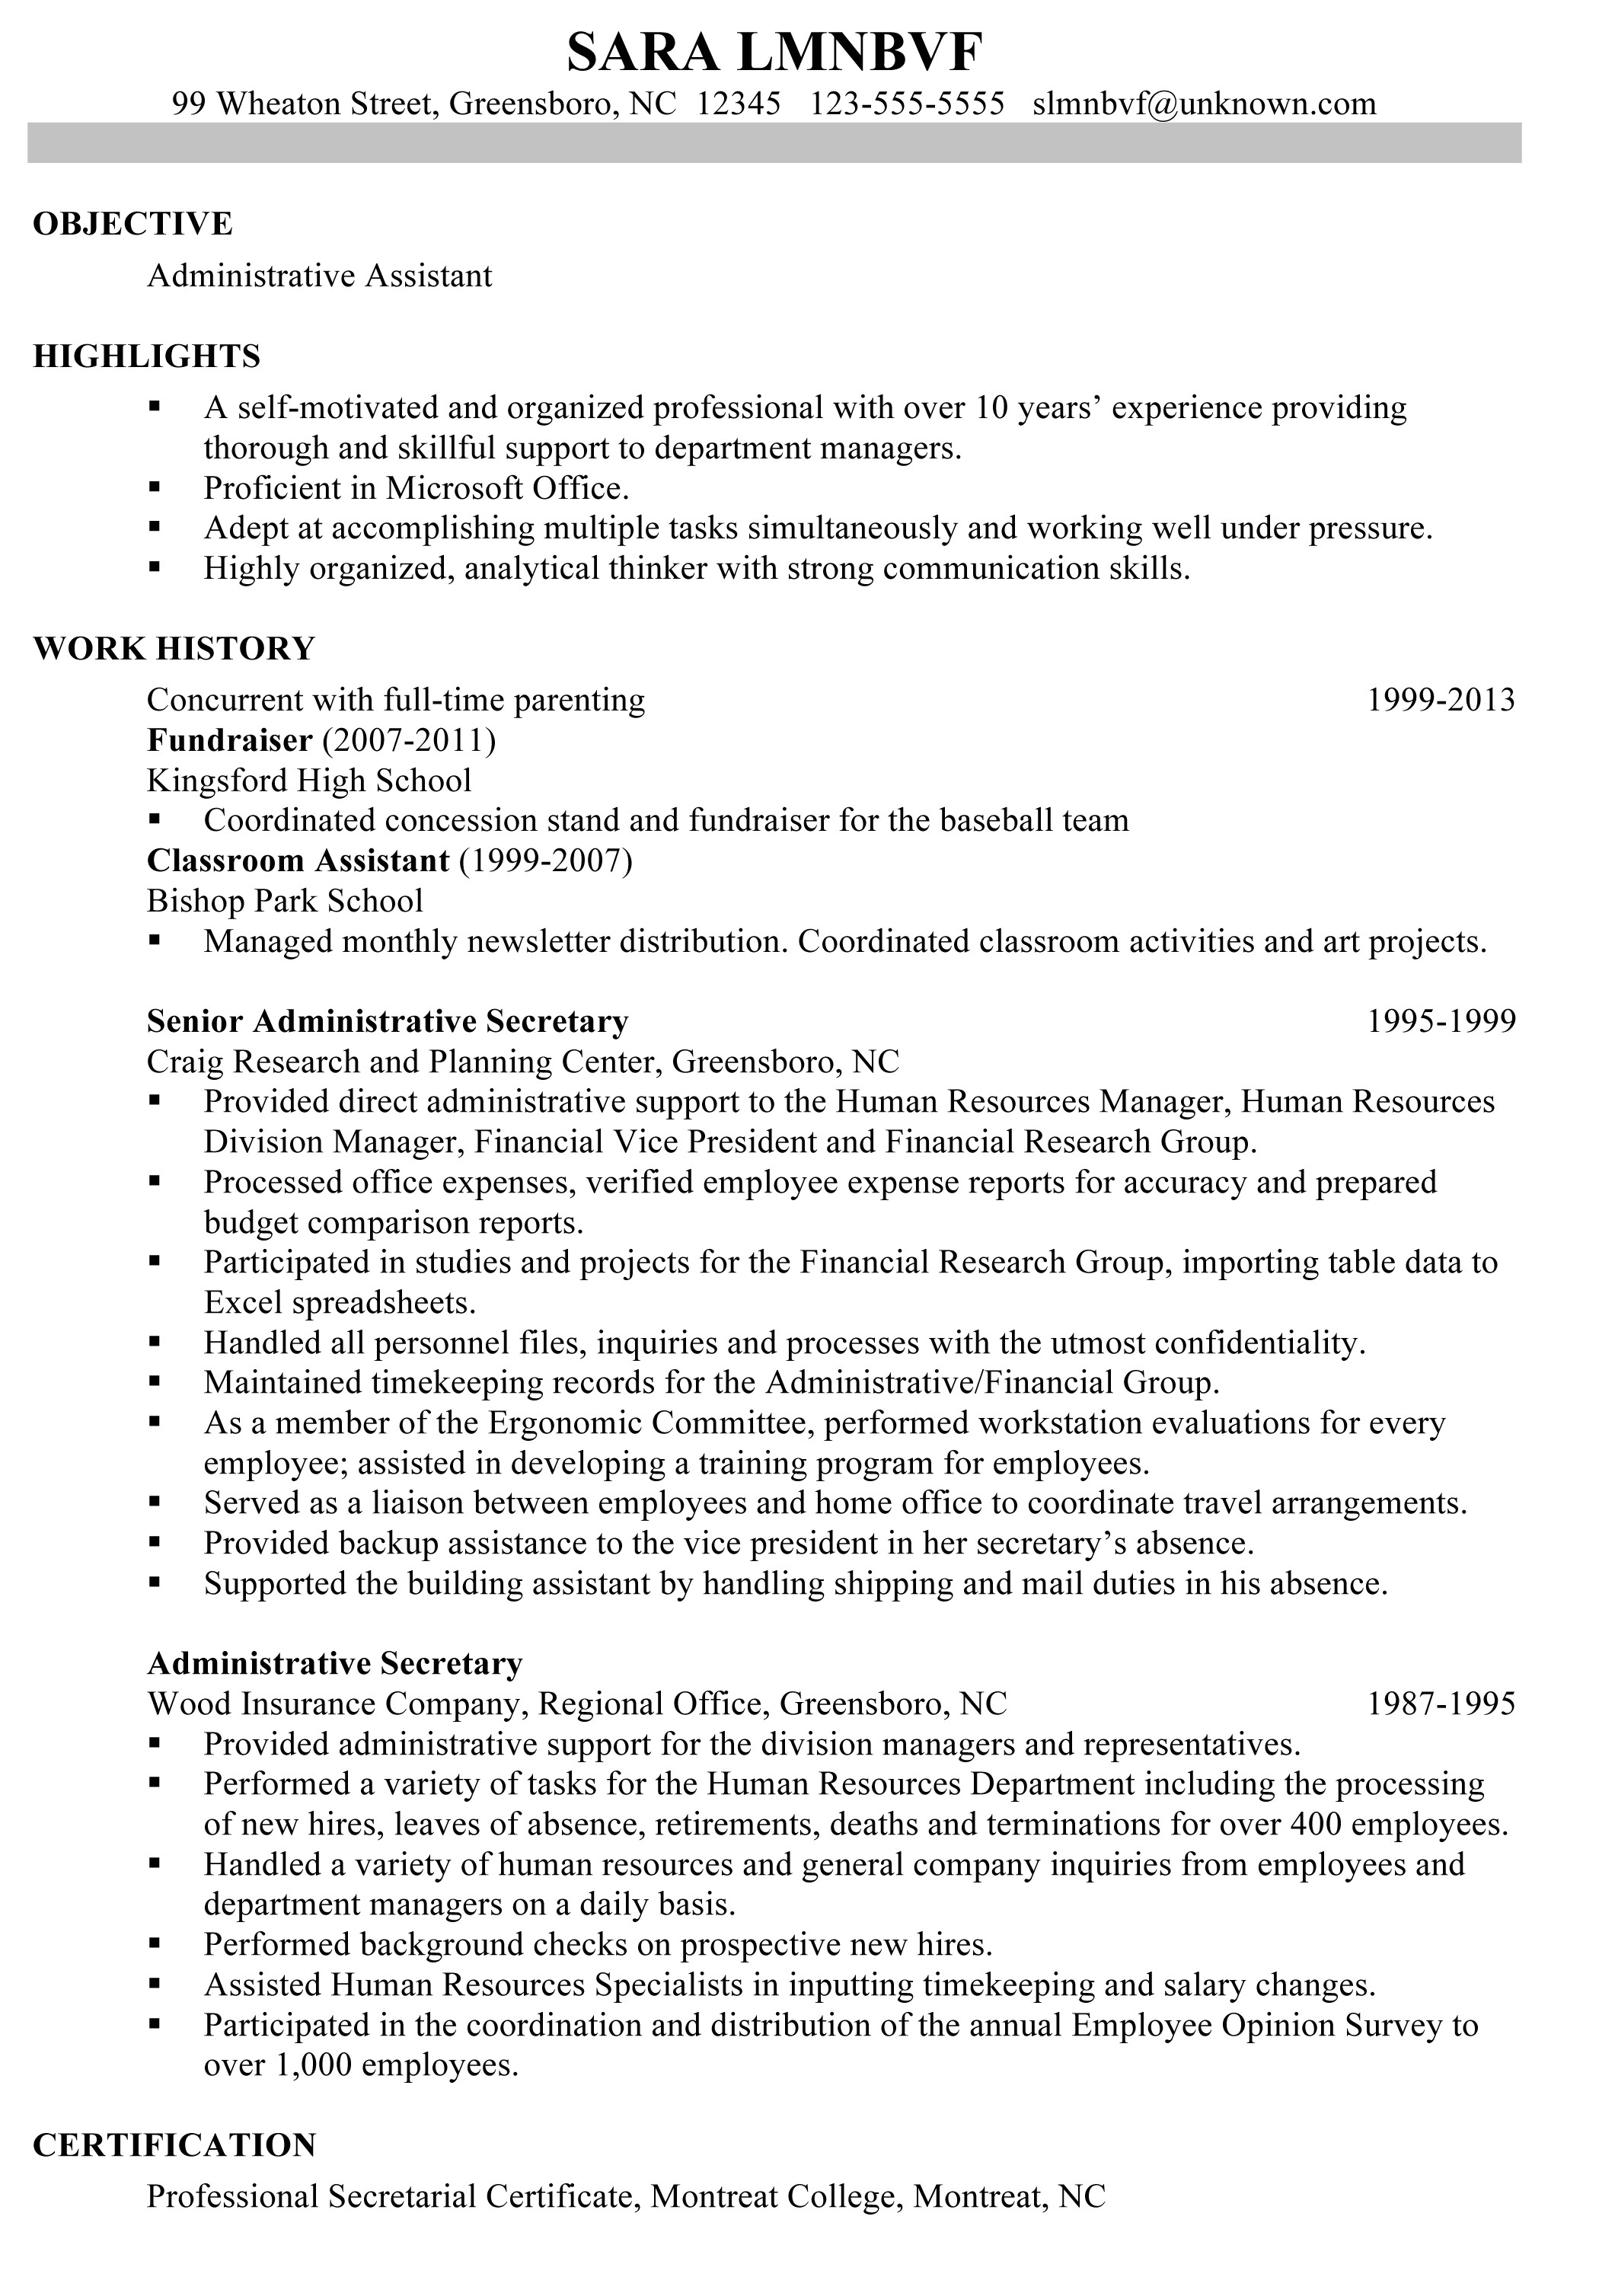 Sample Of Resume Template Resume Sample for An Administrative assistant Susan